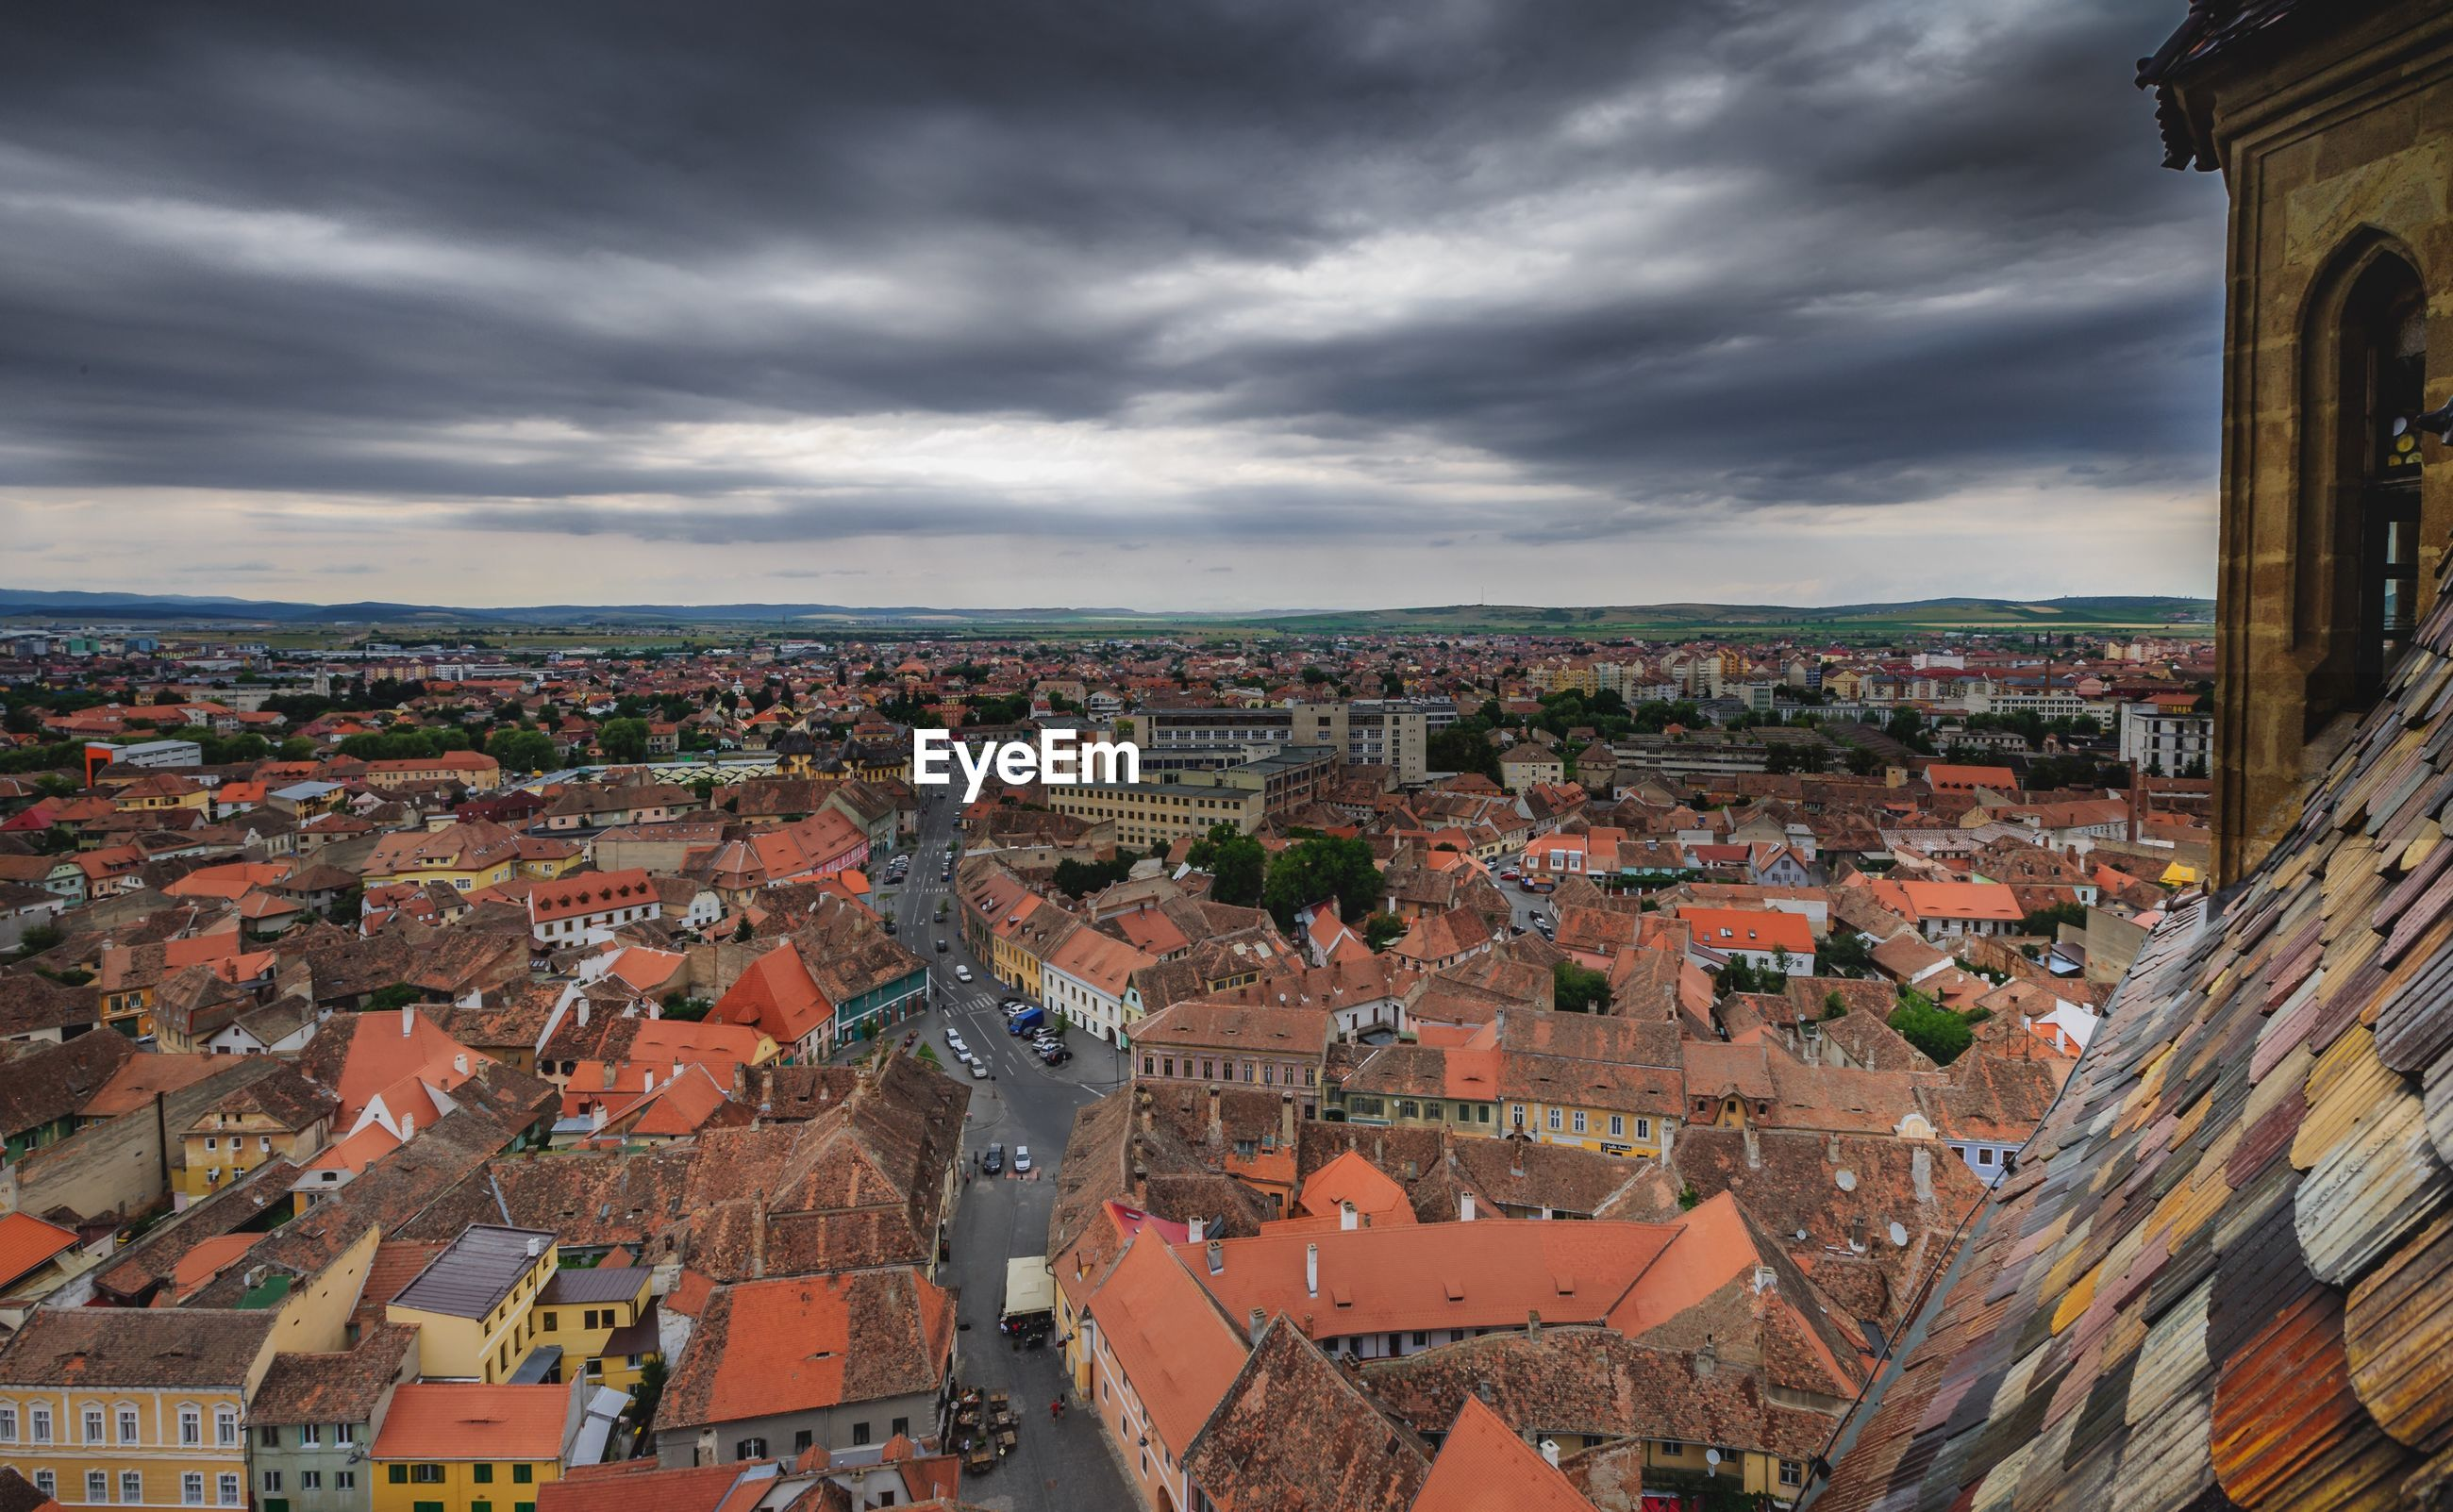 HIGH ANGLE SHOT OF TOWNSCAPE AGAINST SKY IN CITY